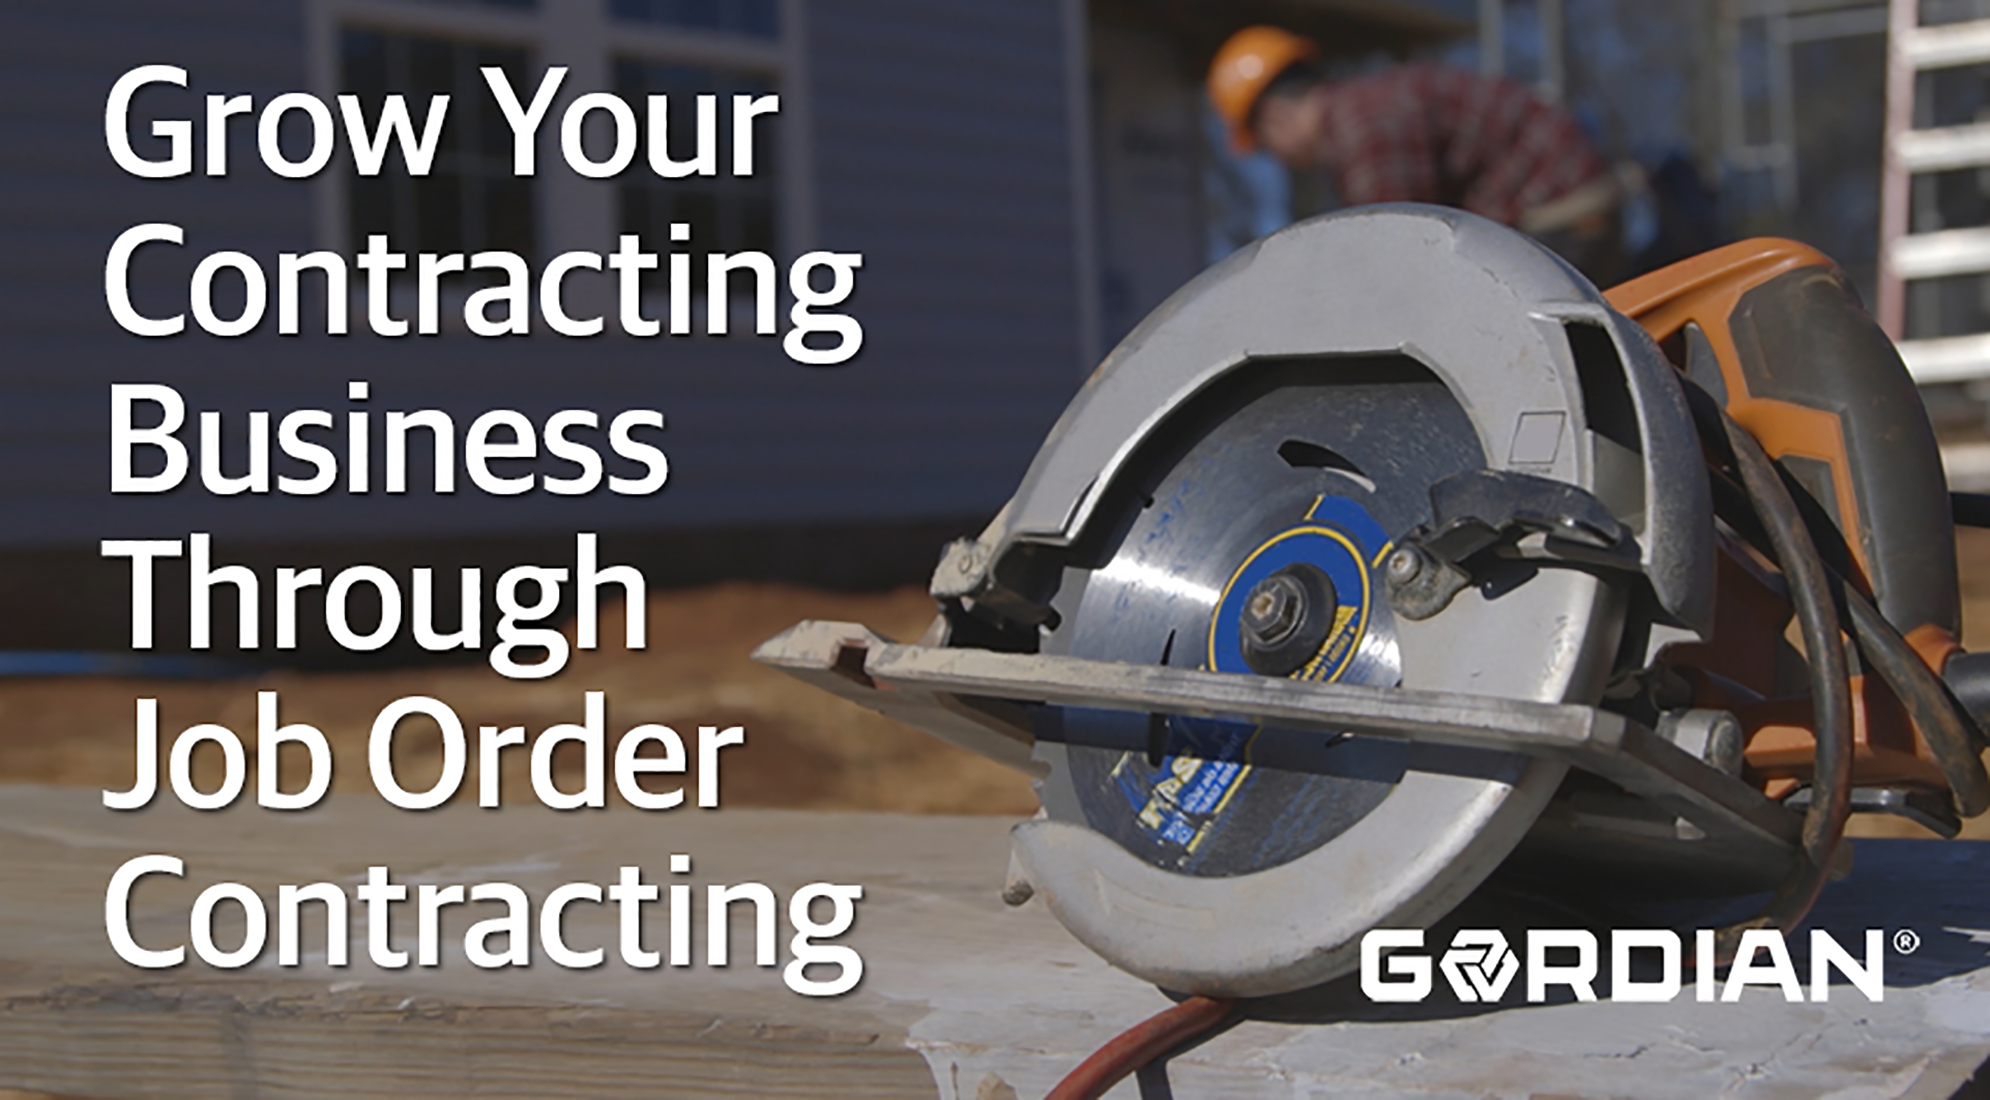 Grow Your Contracting Business with Job Order Contracting